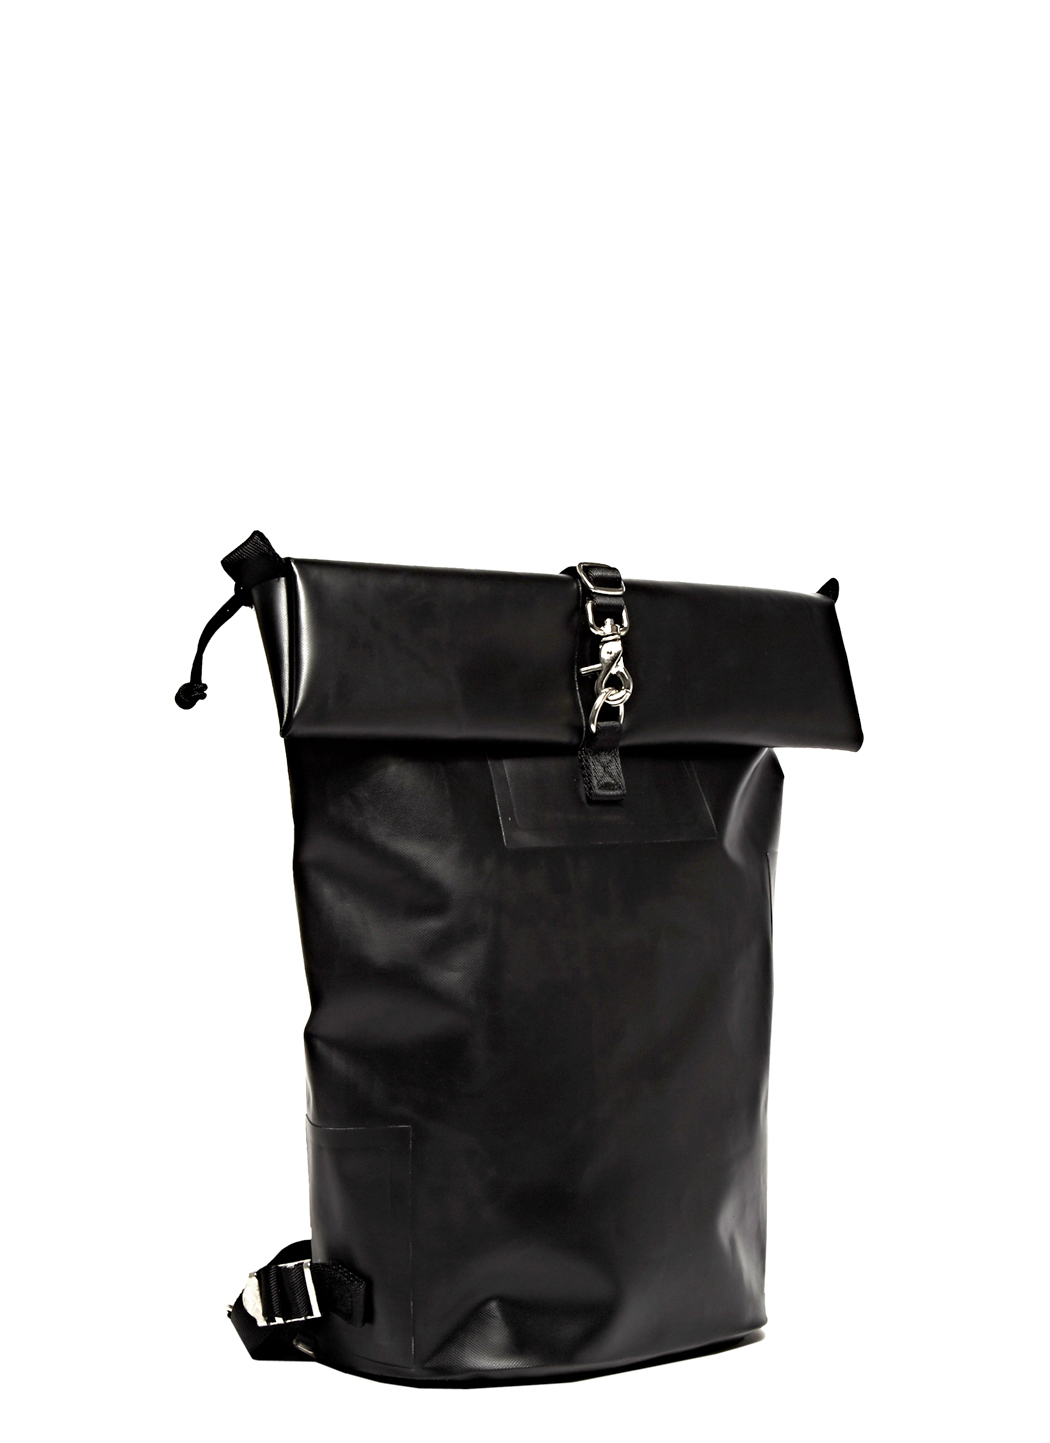 Black Waterproof Backpack kGFxmevR